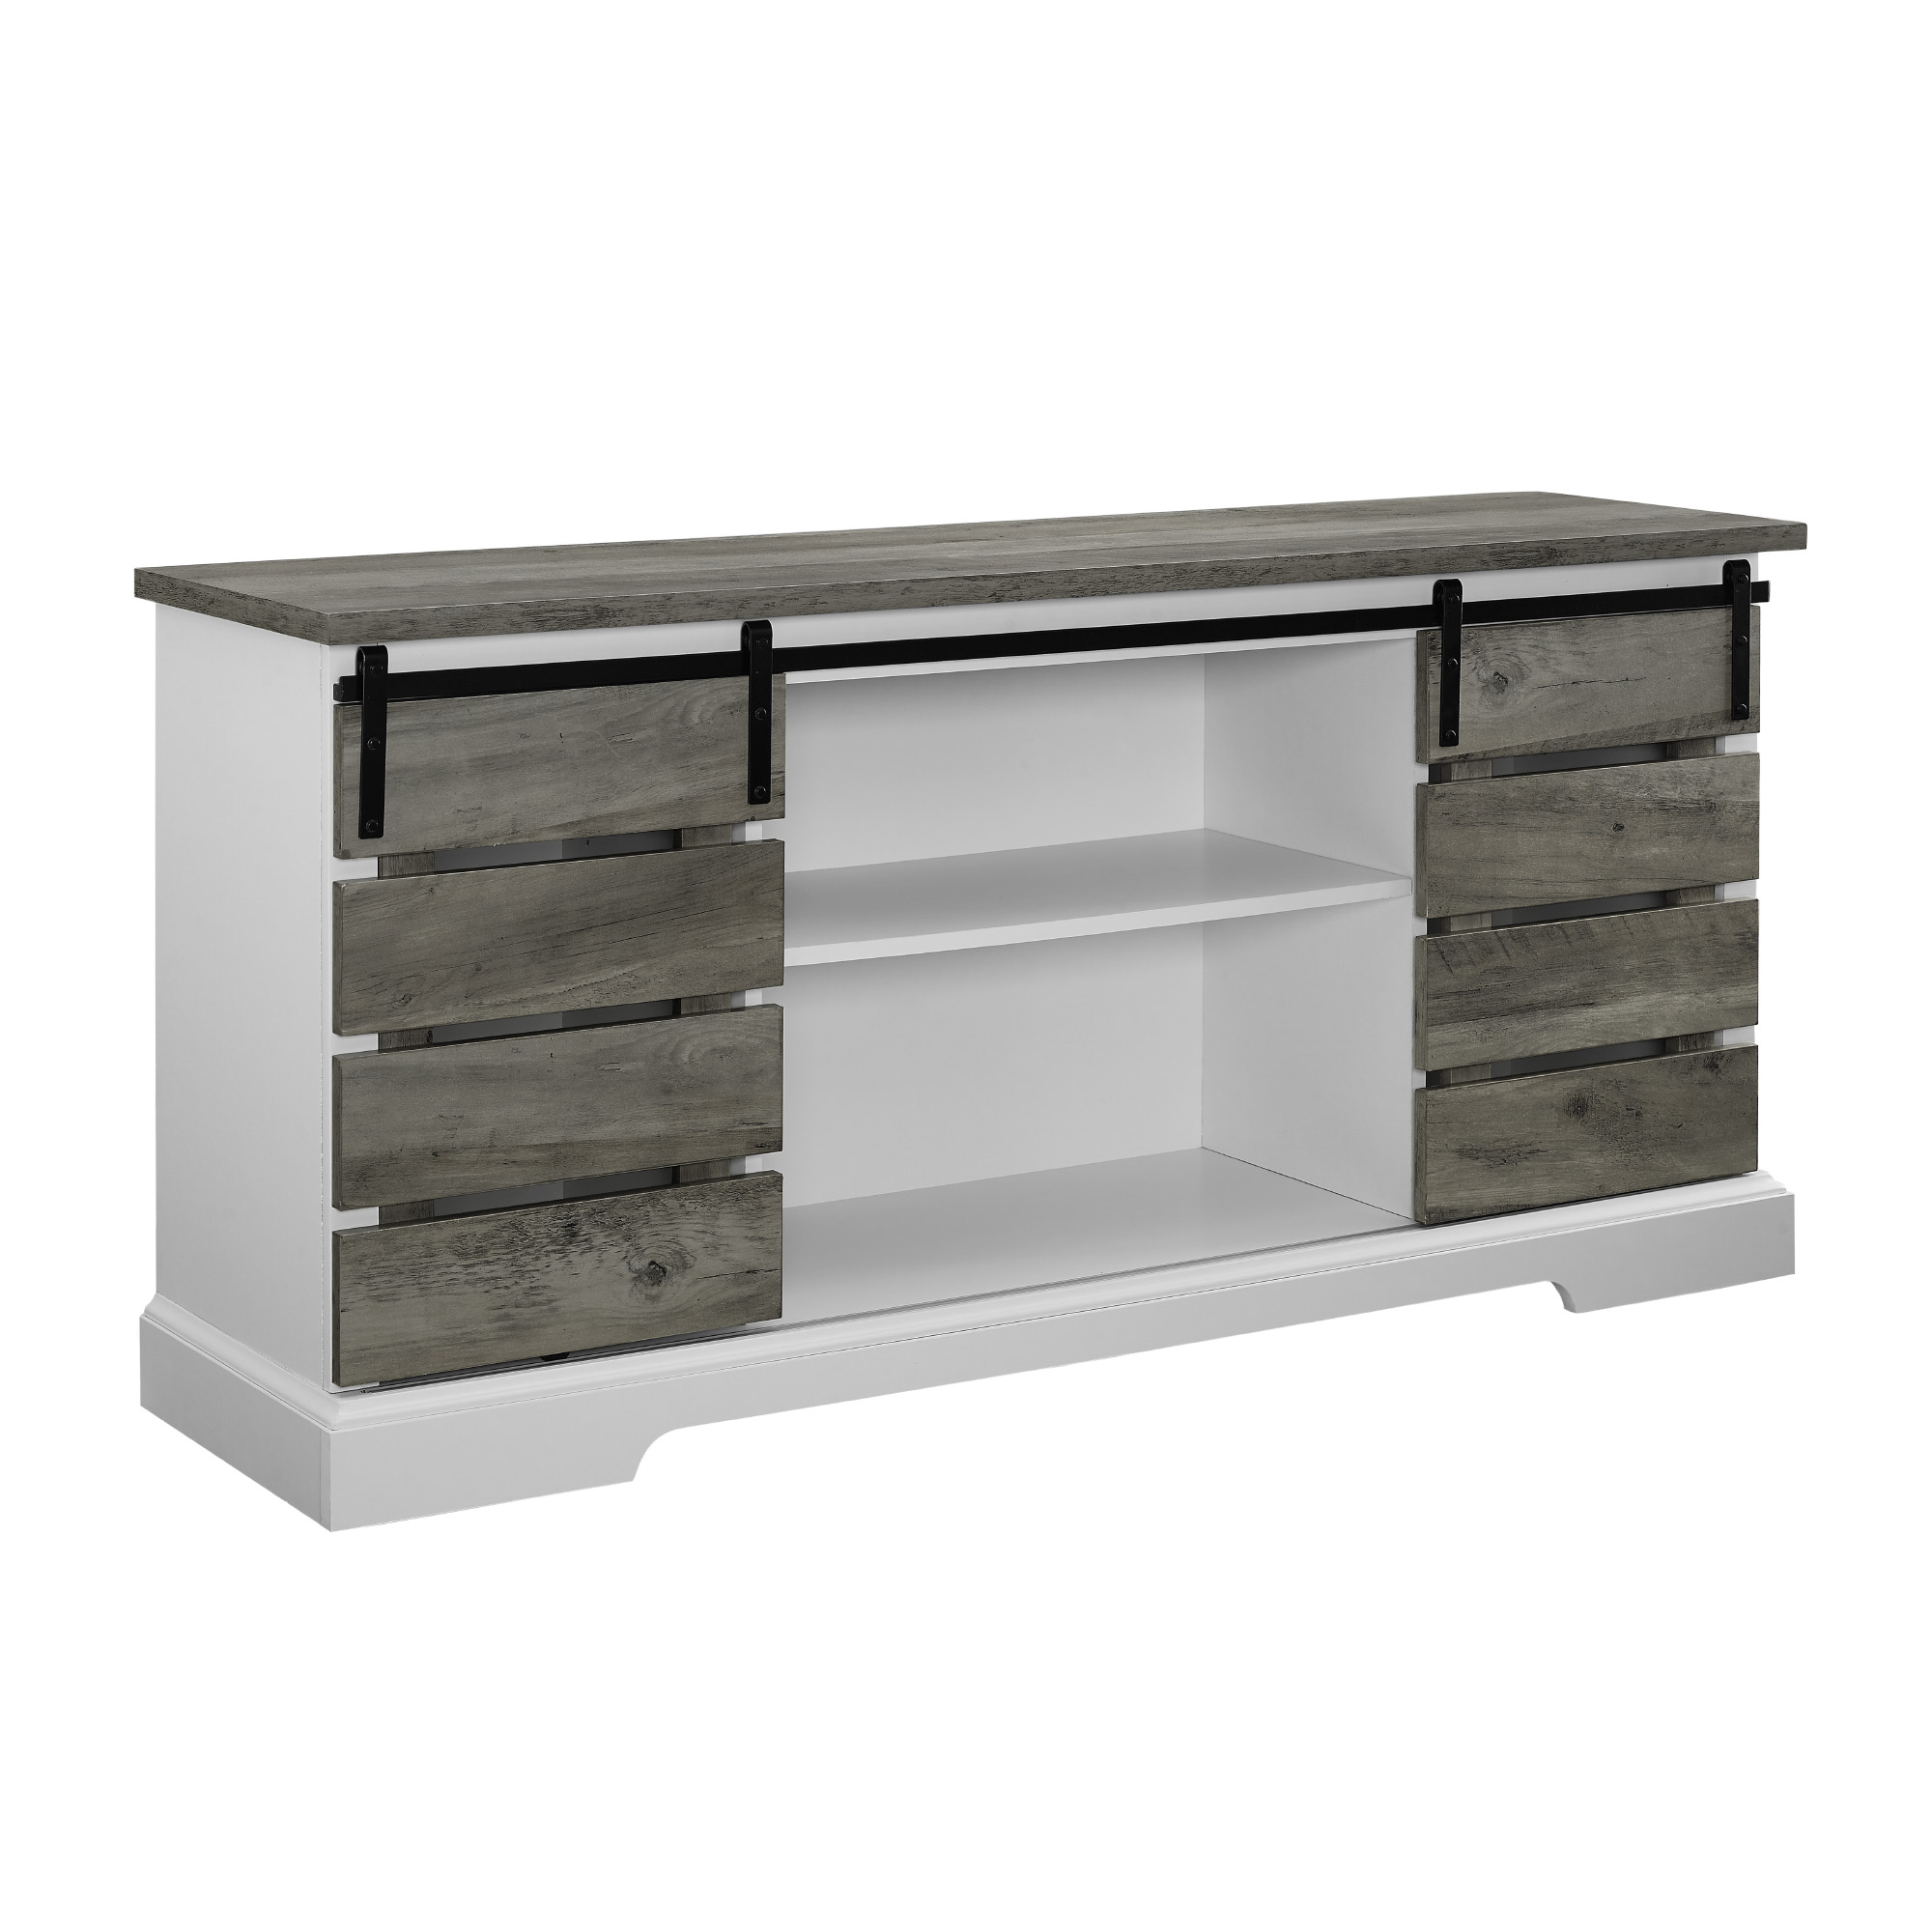 Woven Paths Sliding Slat Door Tv Stand For Tv's Up To 64 In Woven Paths Farmhouse Barn Door Tv Stands In Multiple Finishes (View 1 of 20)